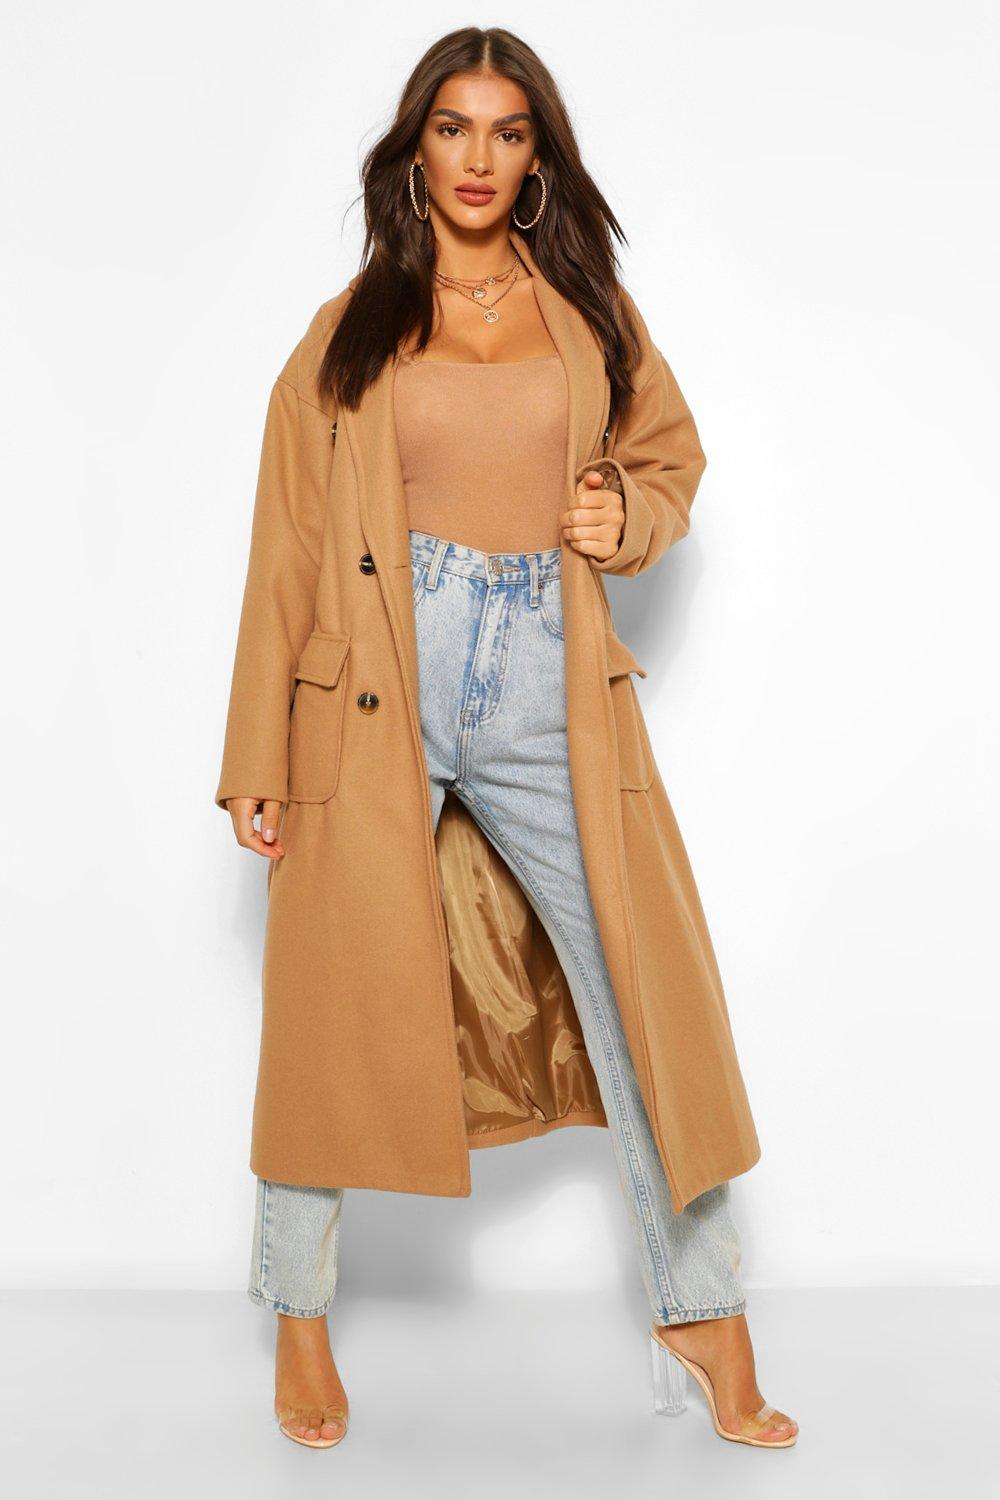 Vintage Coats & Jackets | Retro Coats and Jackets Womens Double Breasted Belted Wool Look Coat - Beige - 12 $45.00 AT vintagedancer.com